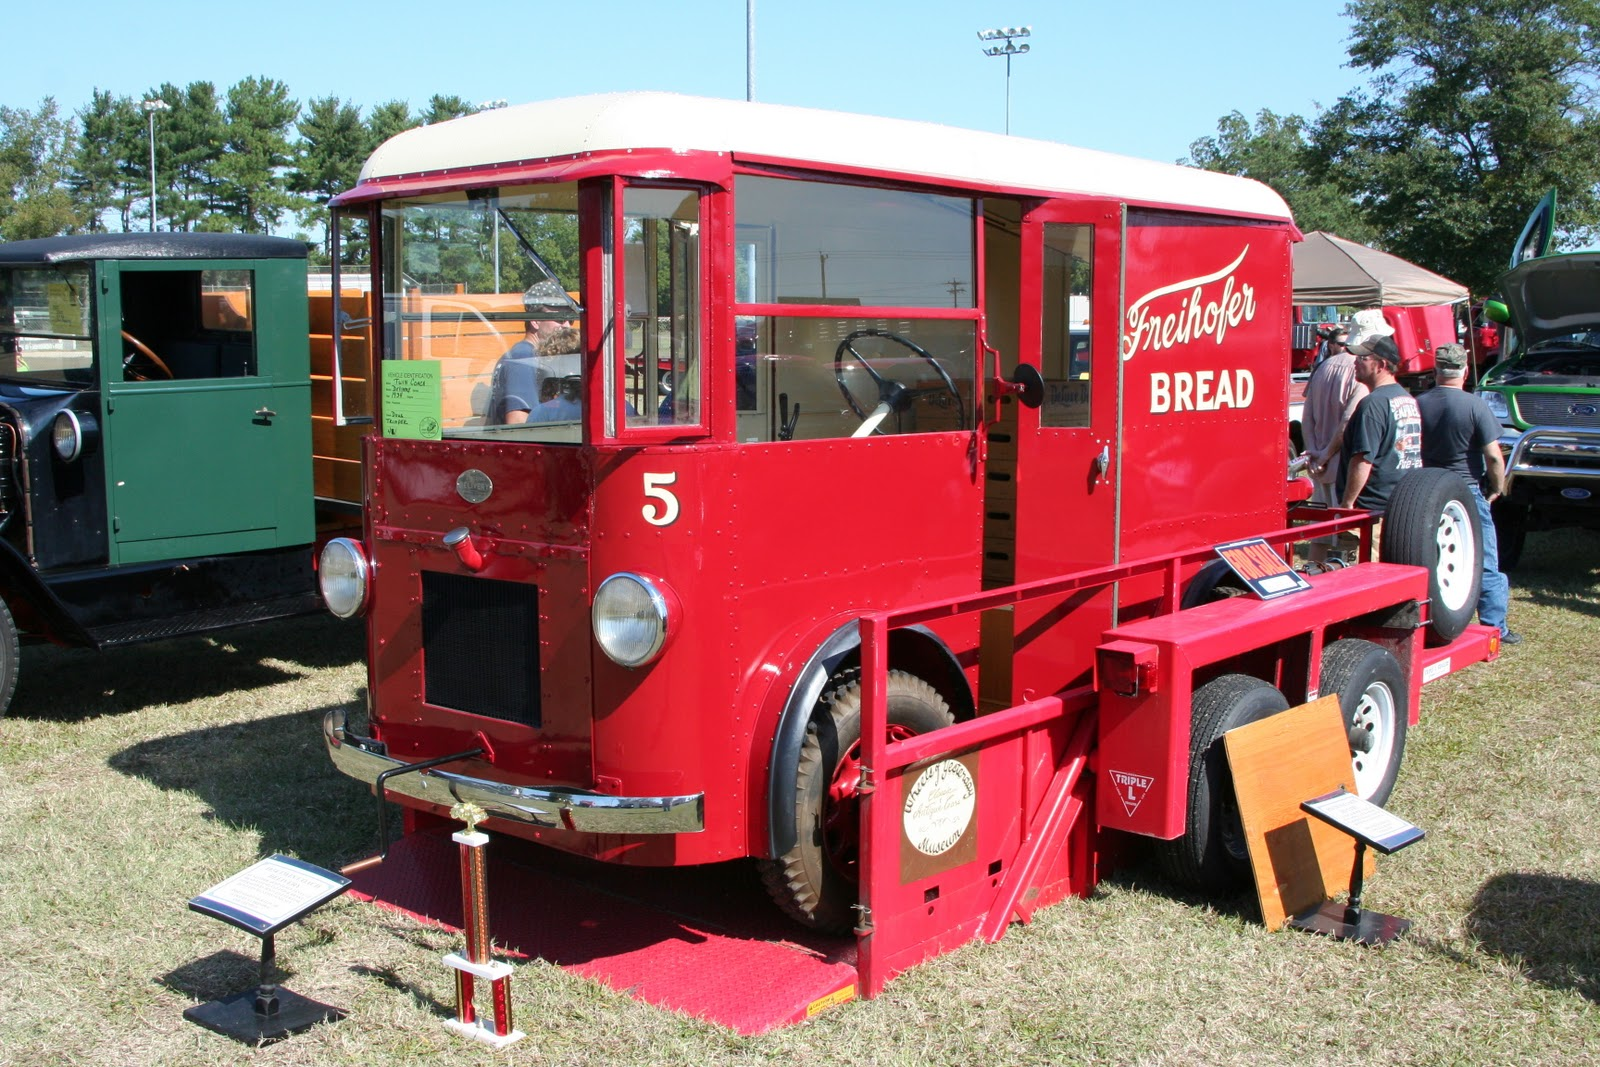 Antique Big Trucks For Sale http://salisburysoapbox.blogspot.com/2011/09/antique-truck-tractor-show.html